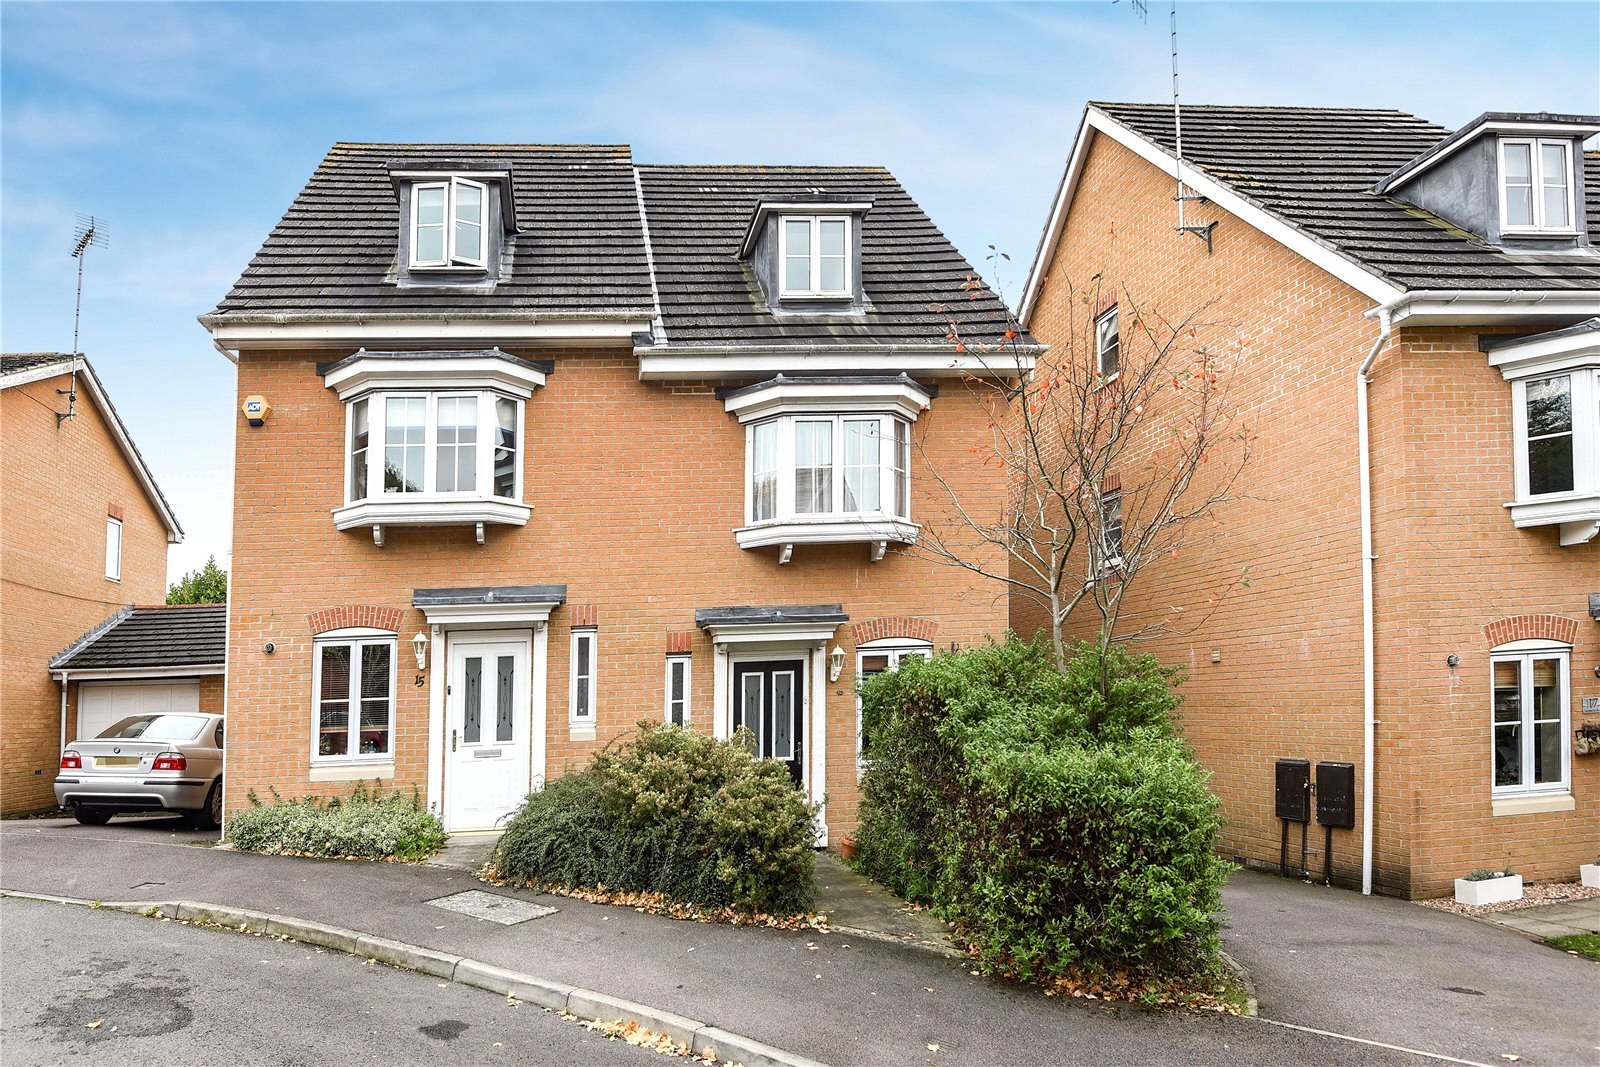 3 Bedrooms Semi Detached House for sale in Hollerith Rise, Bracknell, Berkshire, RG12